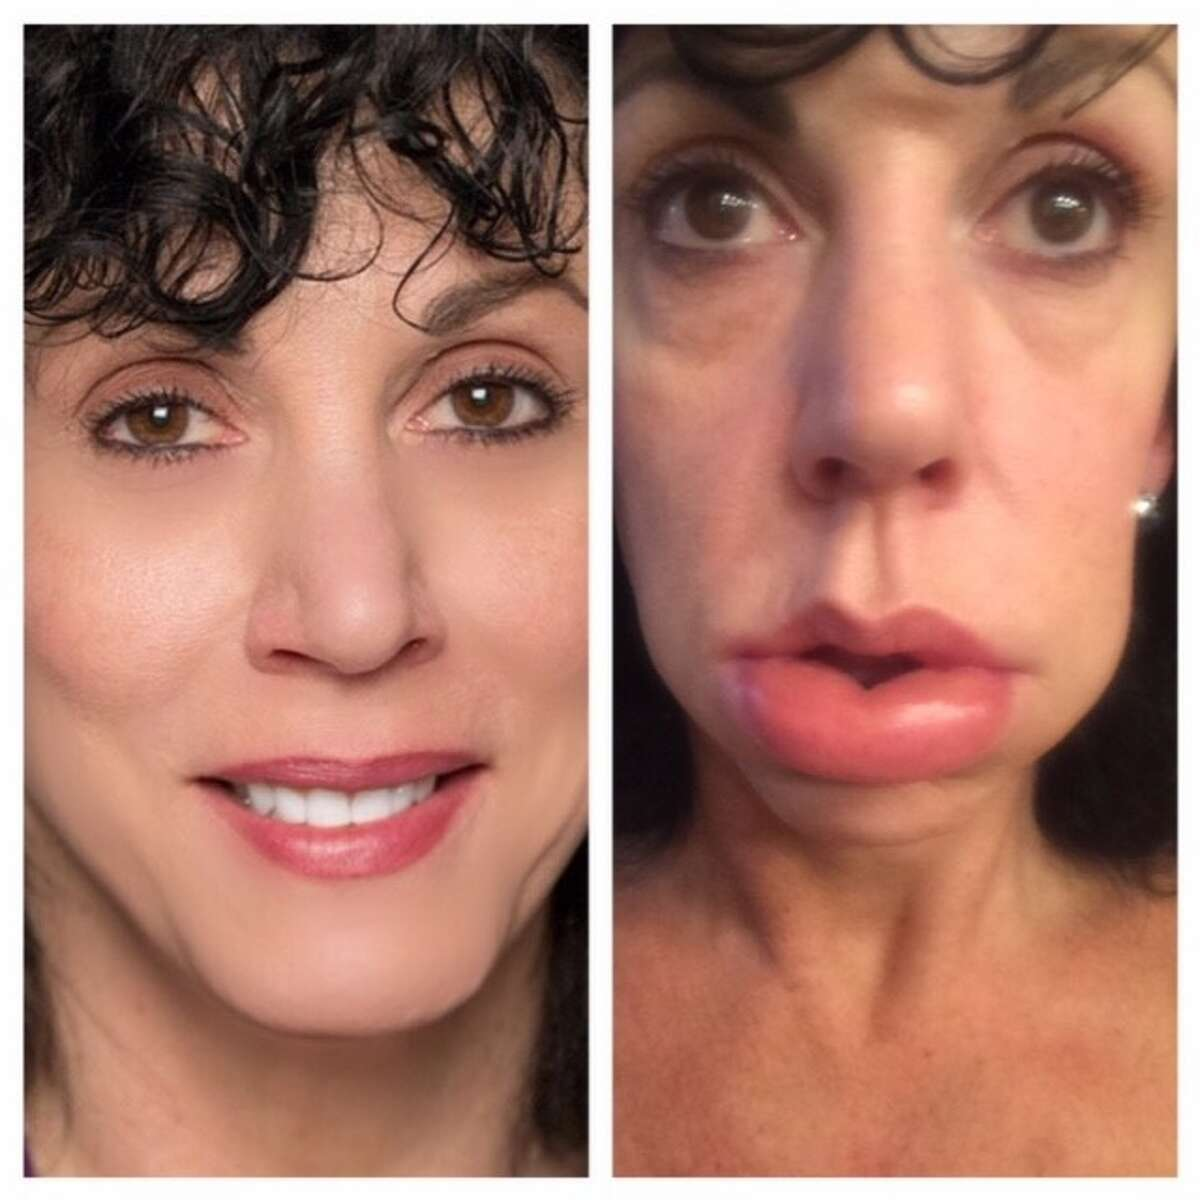 Linda Presler when she's well, left, and having a swelling attack, right. (Provided)